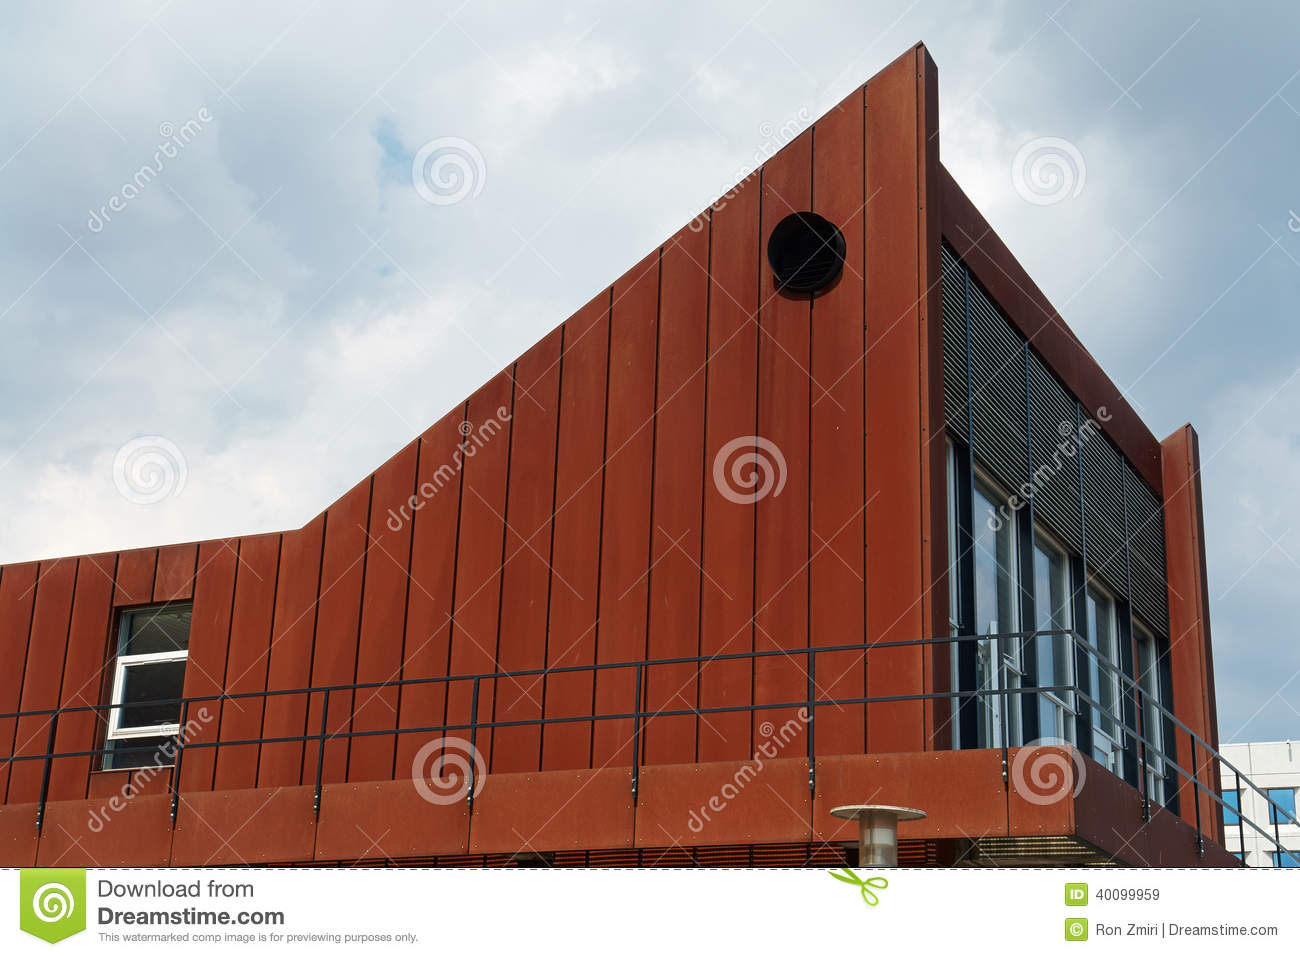 Modern Design Building With usty Facade Stock Photo - Image ... - ^